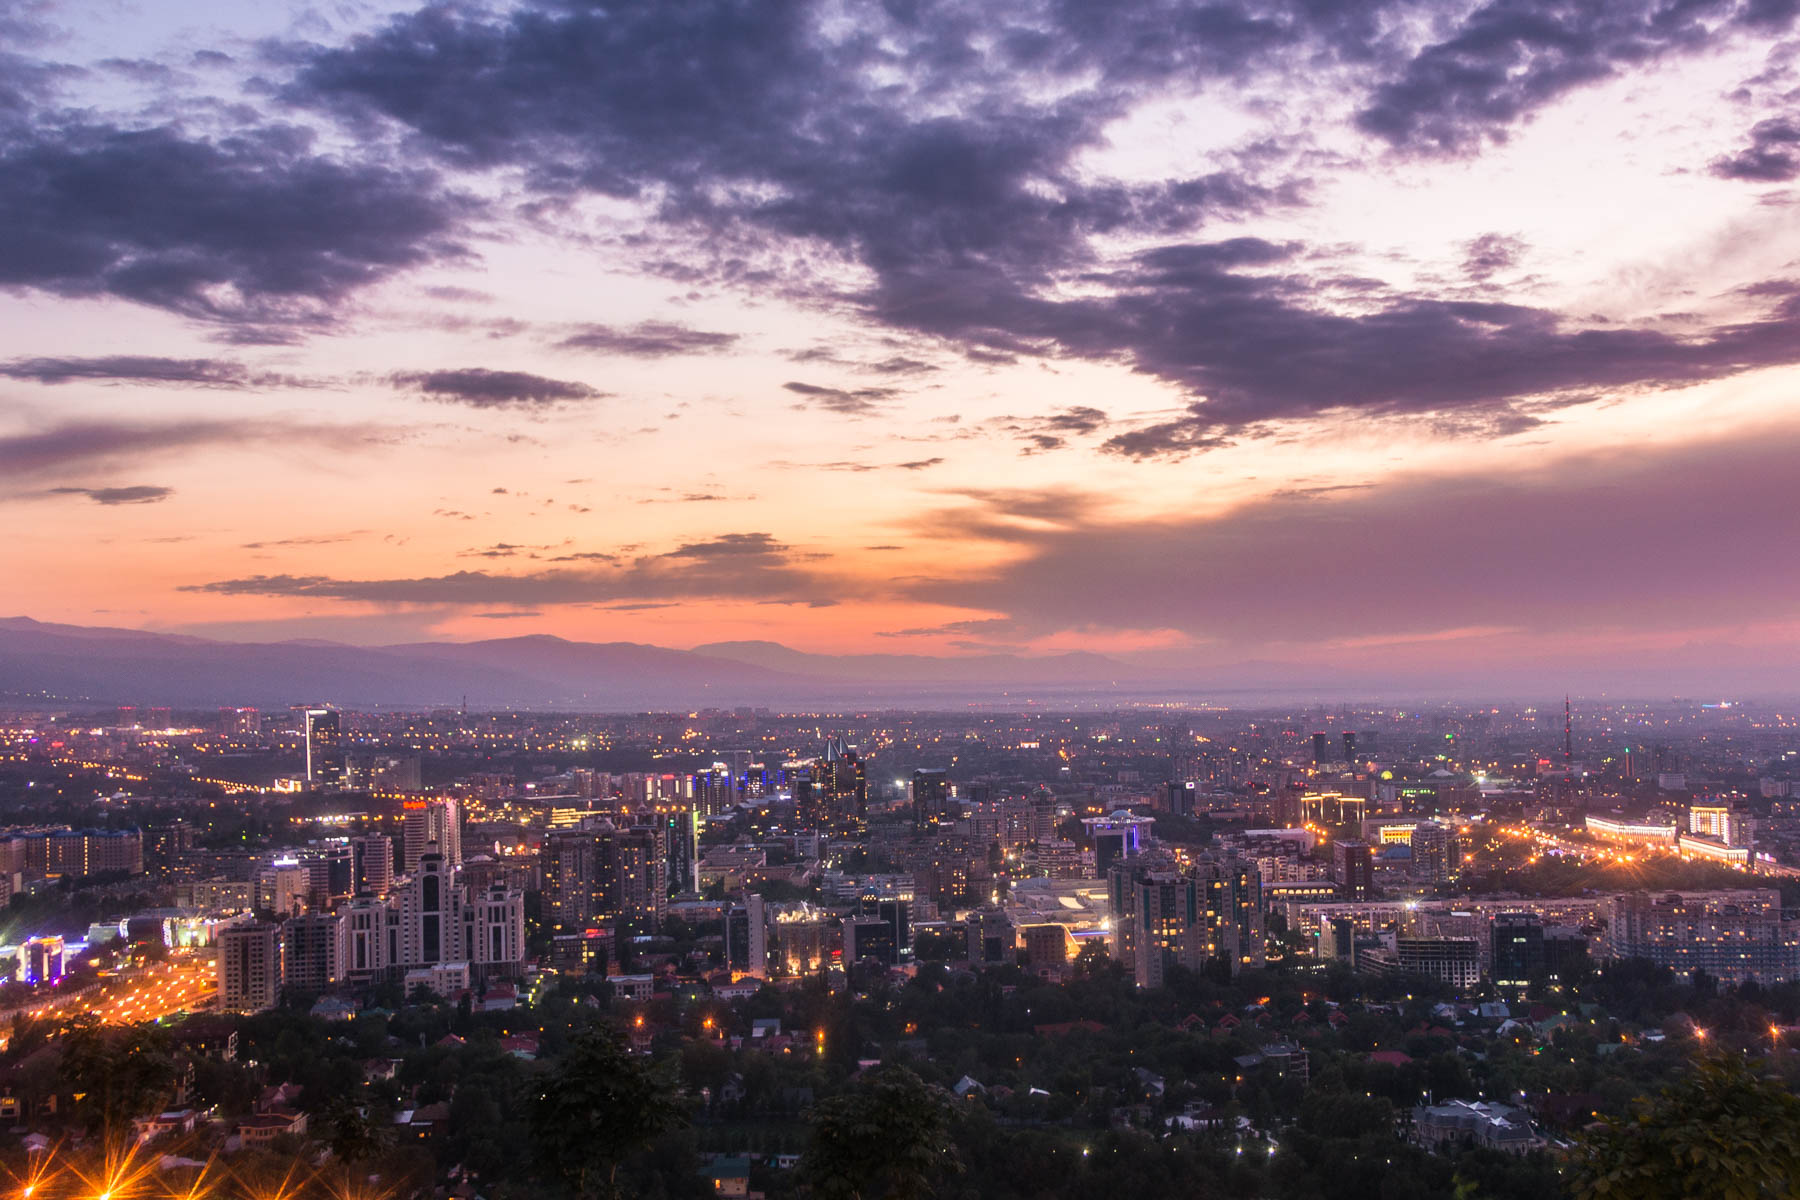 The Almaty skyline as seen from Kok Tobe at sunset - Lost With Purpose